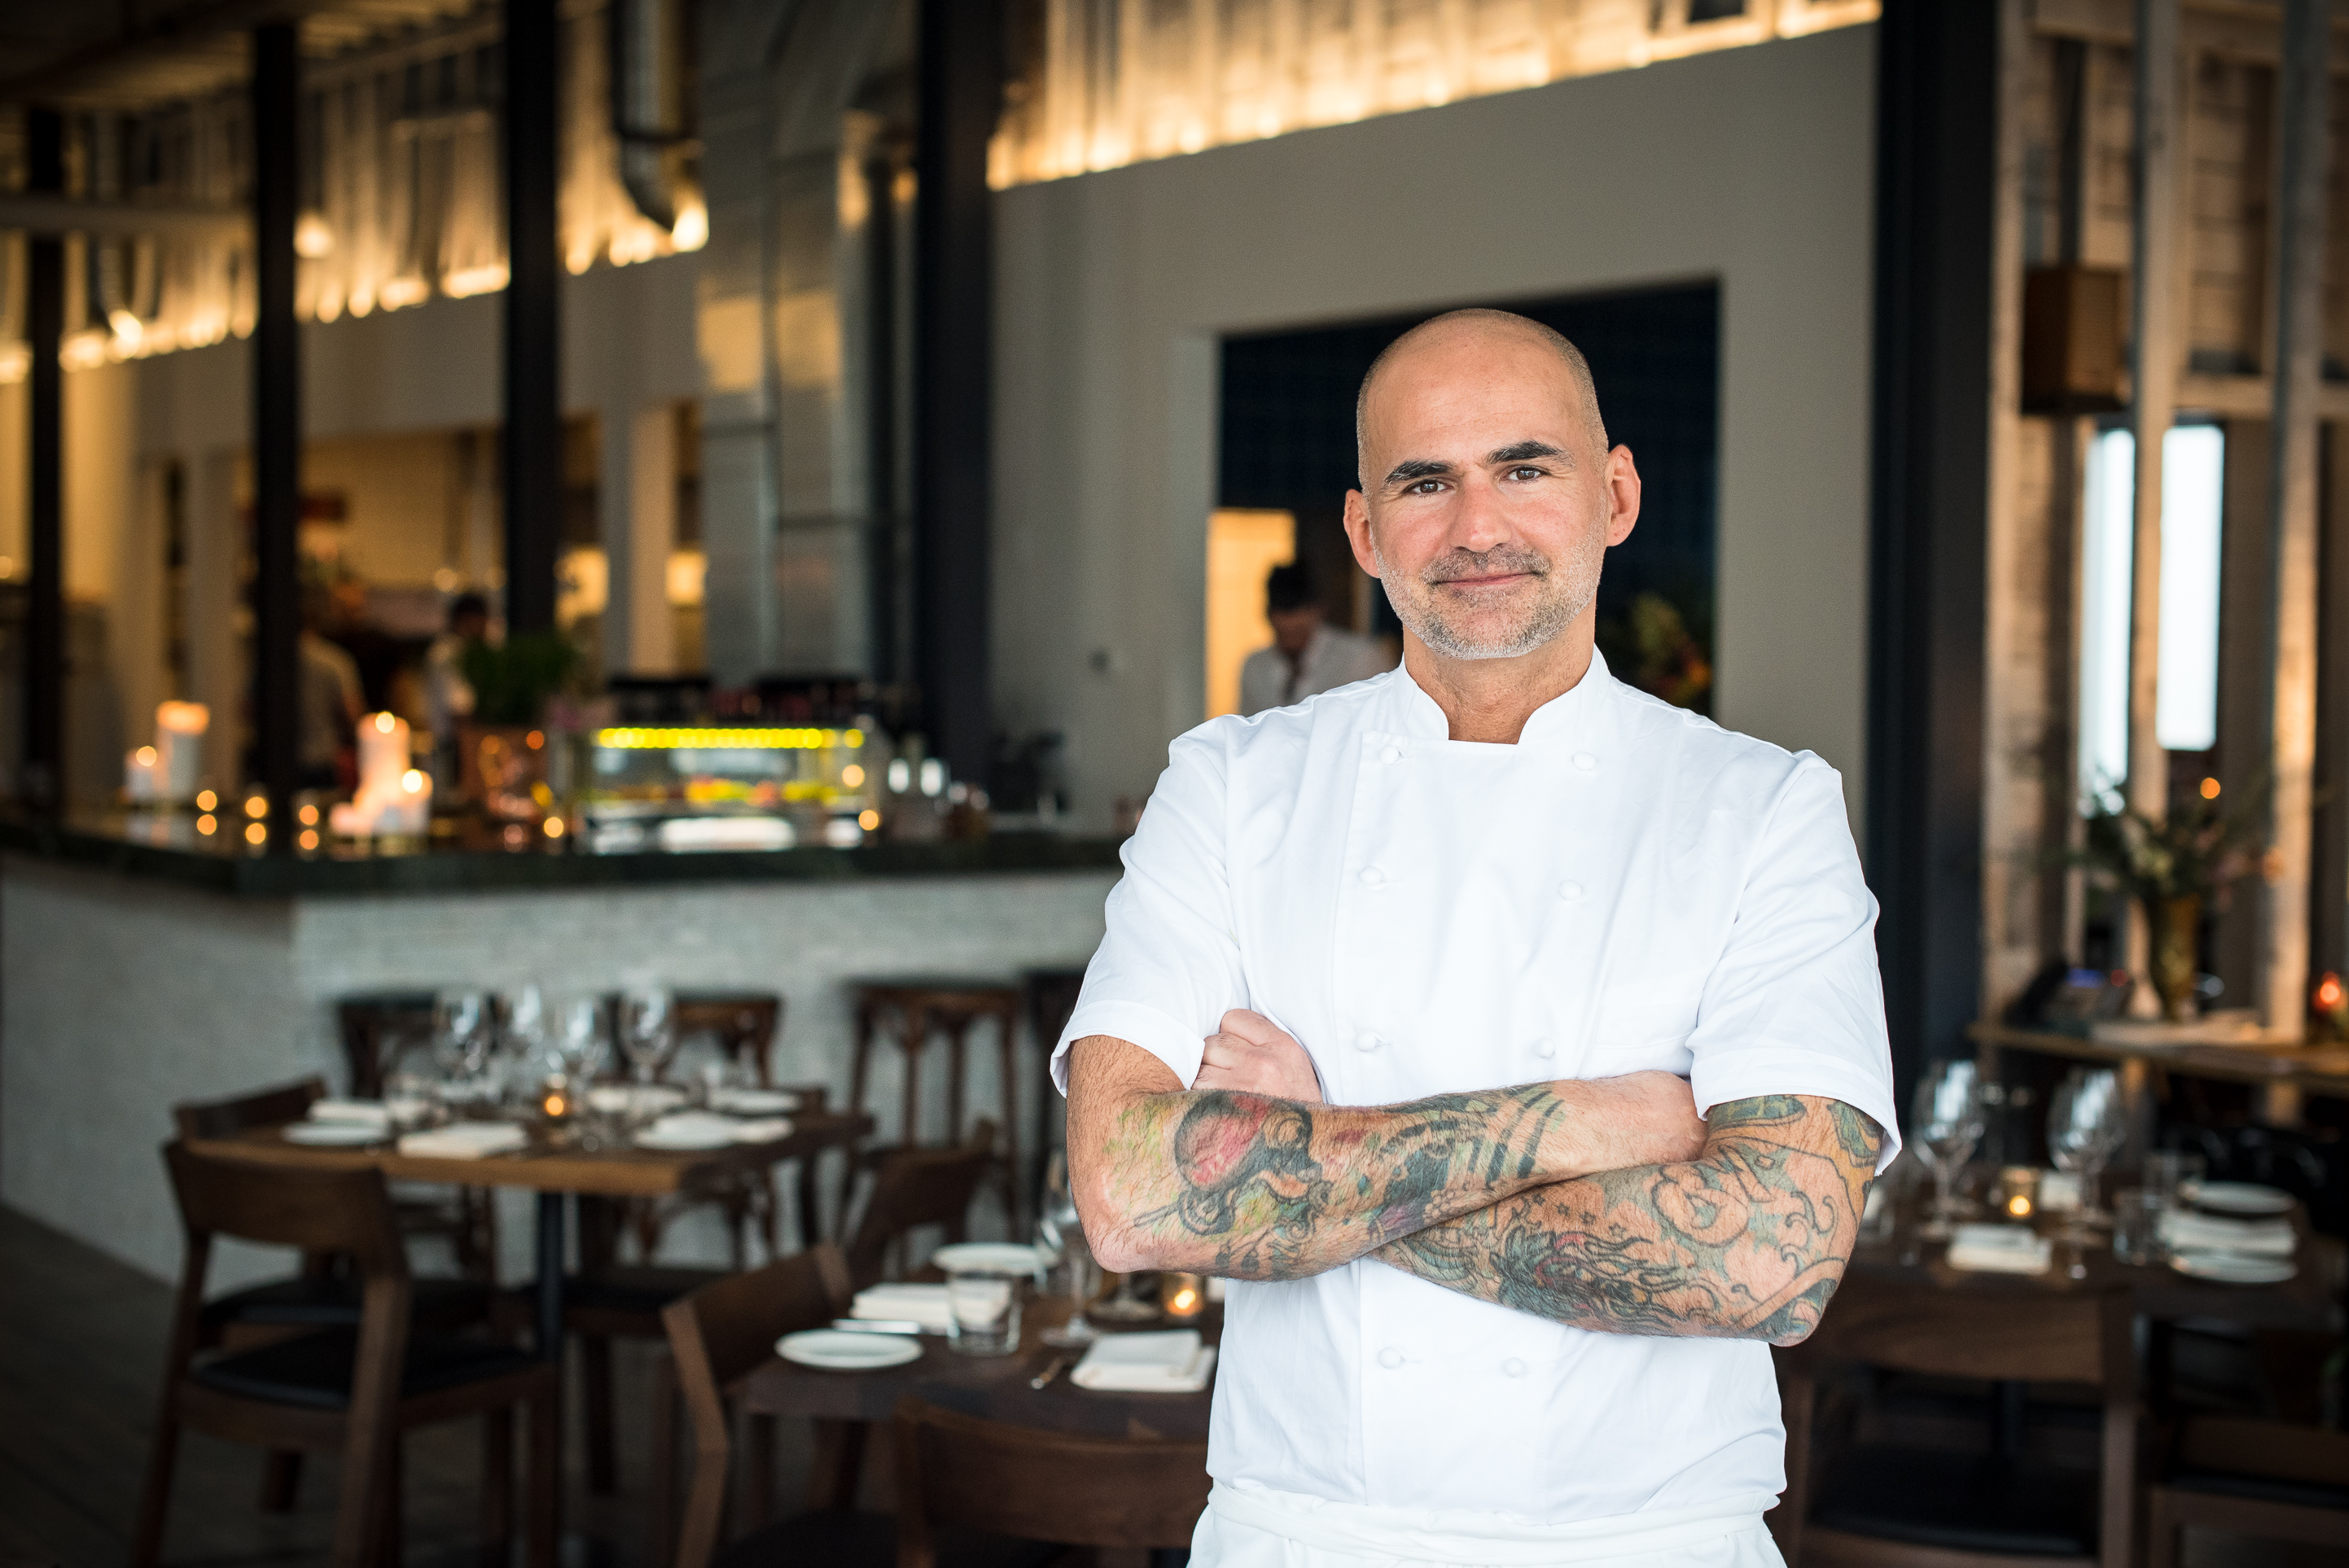 The bald, tattooed chef with a salt and pepper goatee stands, arms crossed, inside a dining room with wood tables and white walls